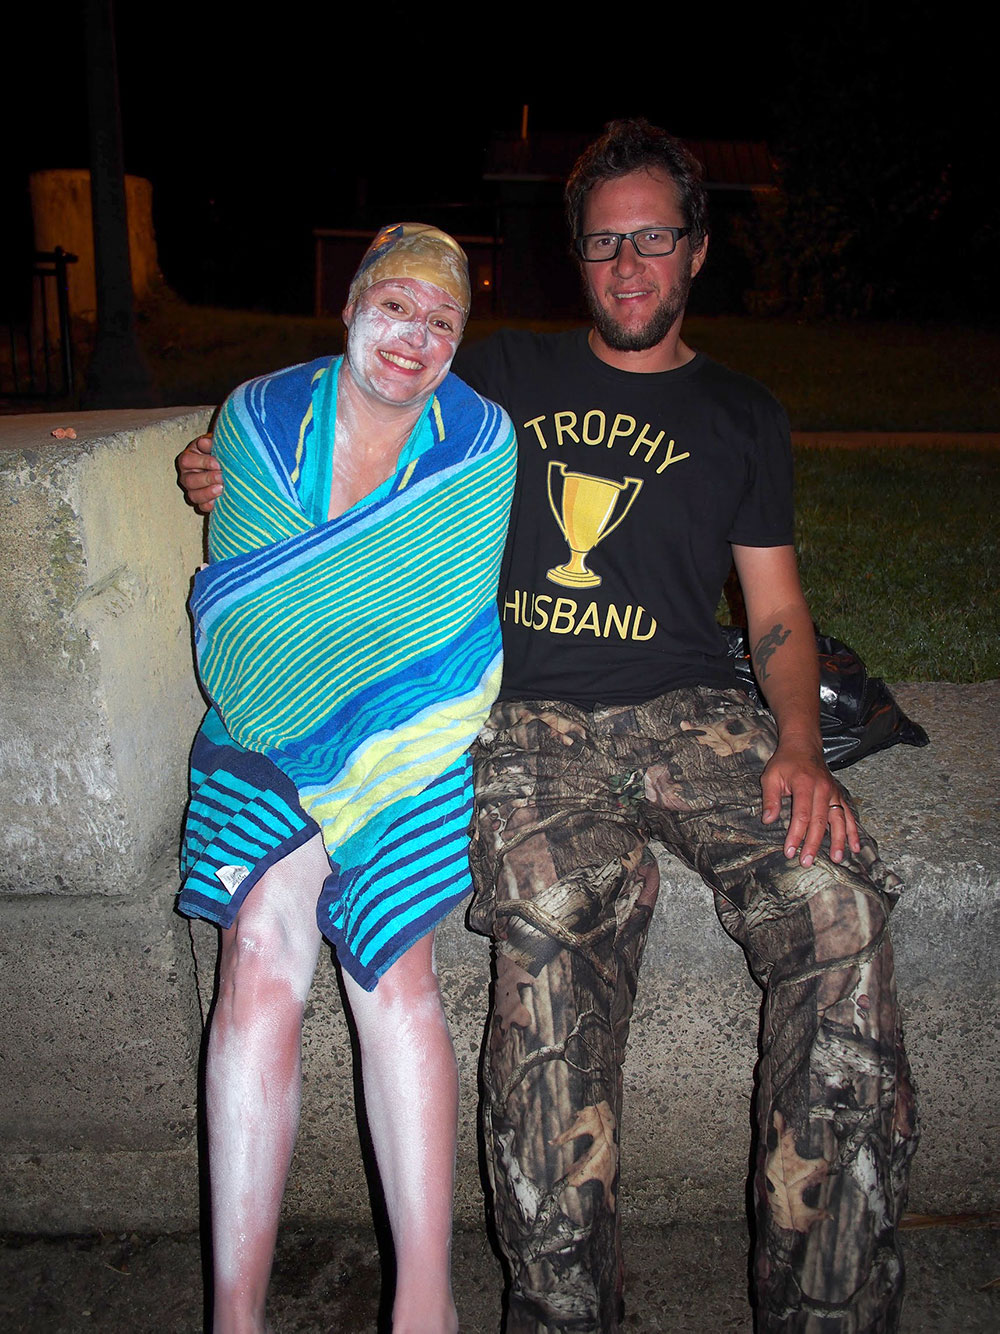 Sarah Thomas, covered in heavy-duty sunscreen, after her world-record–breaking marathon swim across Lake Champlain, stands next to her husband, who is wearing a shirt saying 'trophy husband'